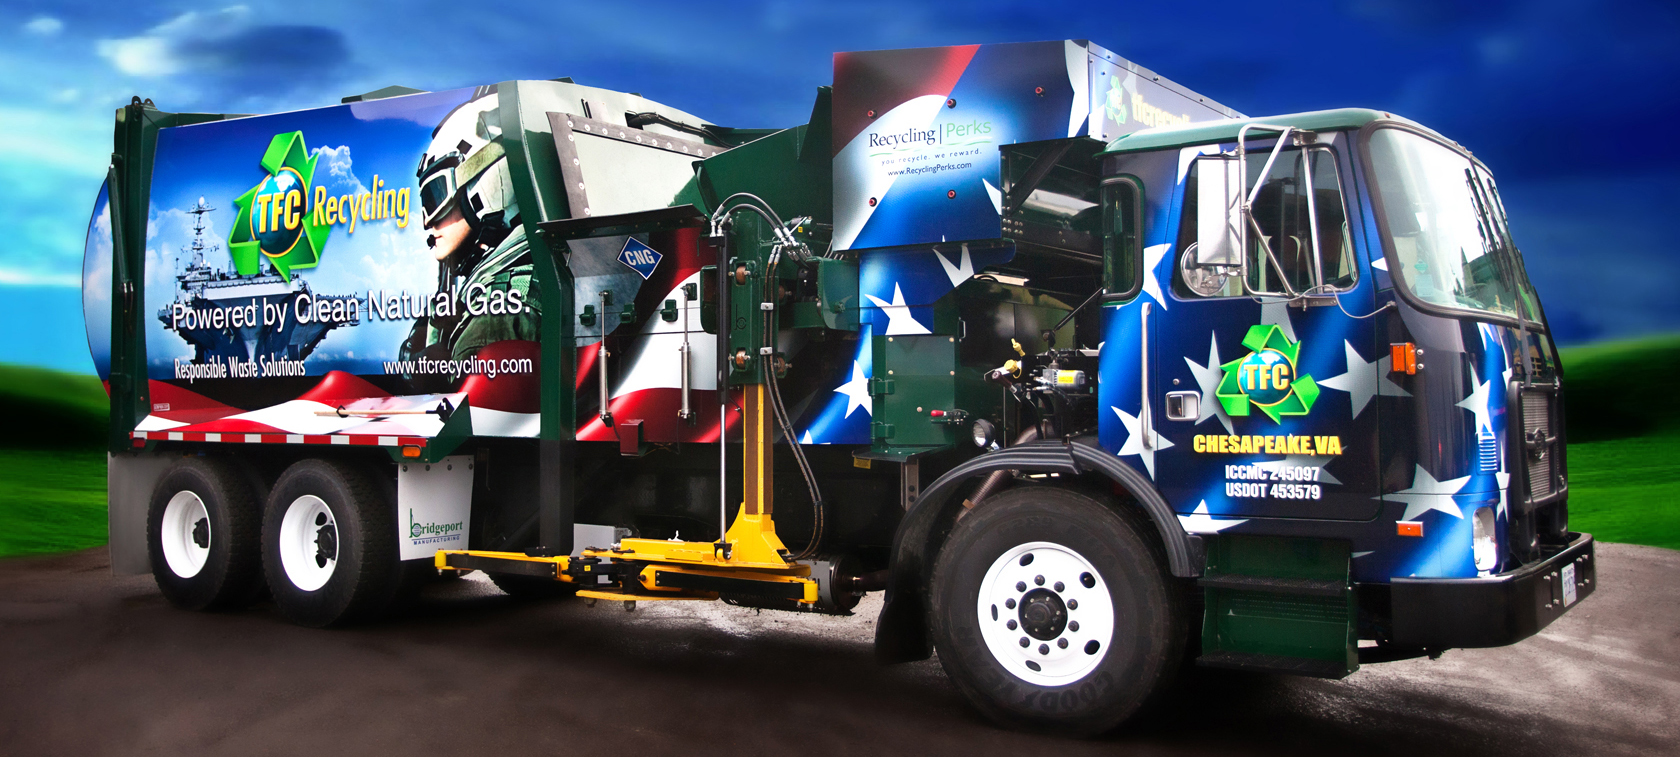 TFC Recycling converting to CNG